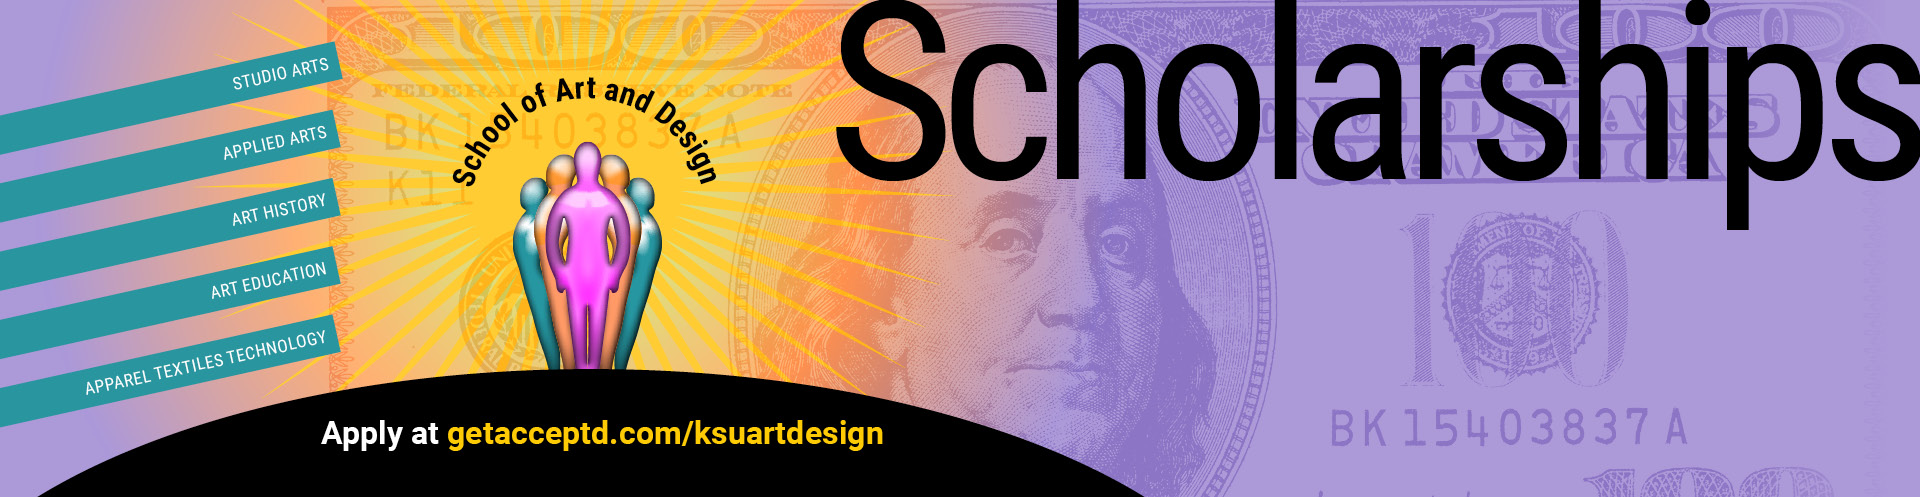 Scholarships are available to students of the School of Art and Design at Kennesaw State